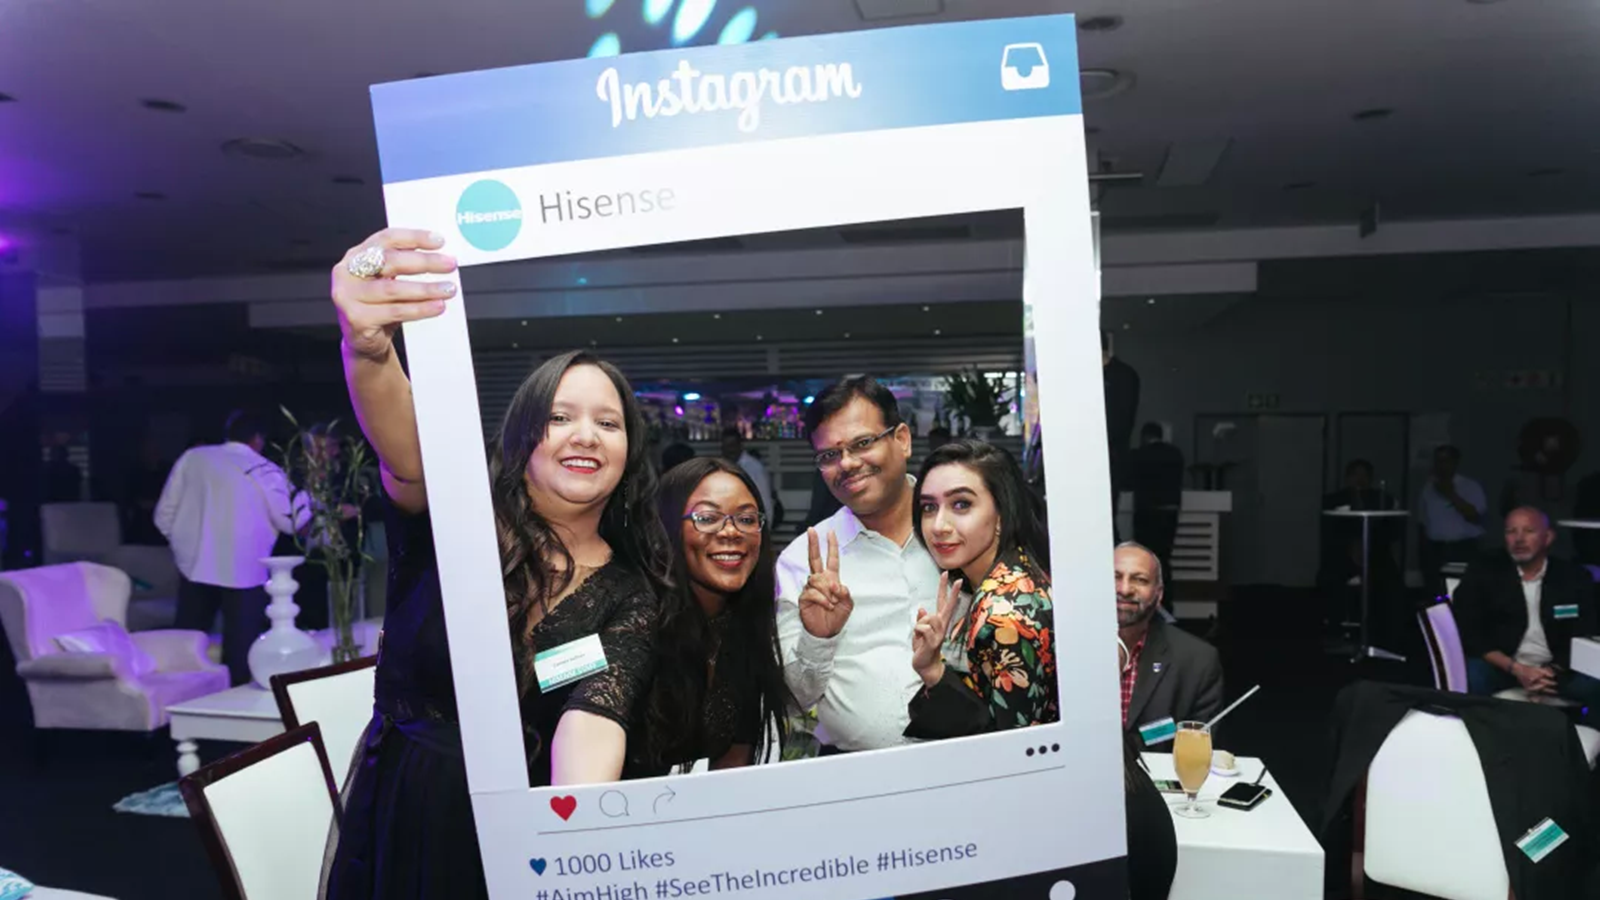 Hisense South Africa #Lifeisbetter Home Appliances New Product Launch Event